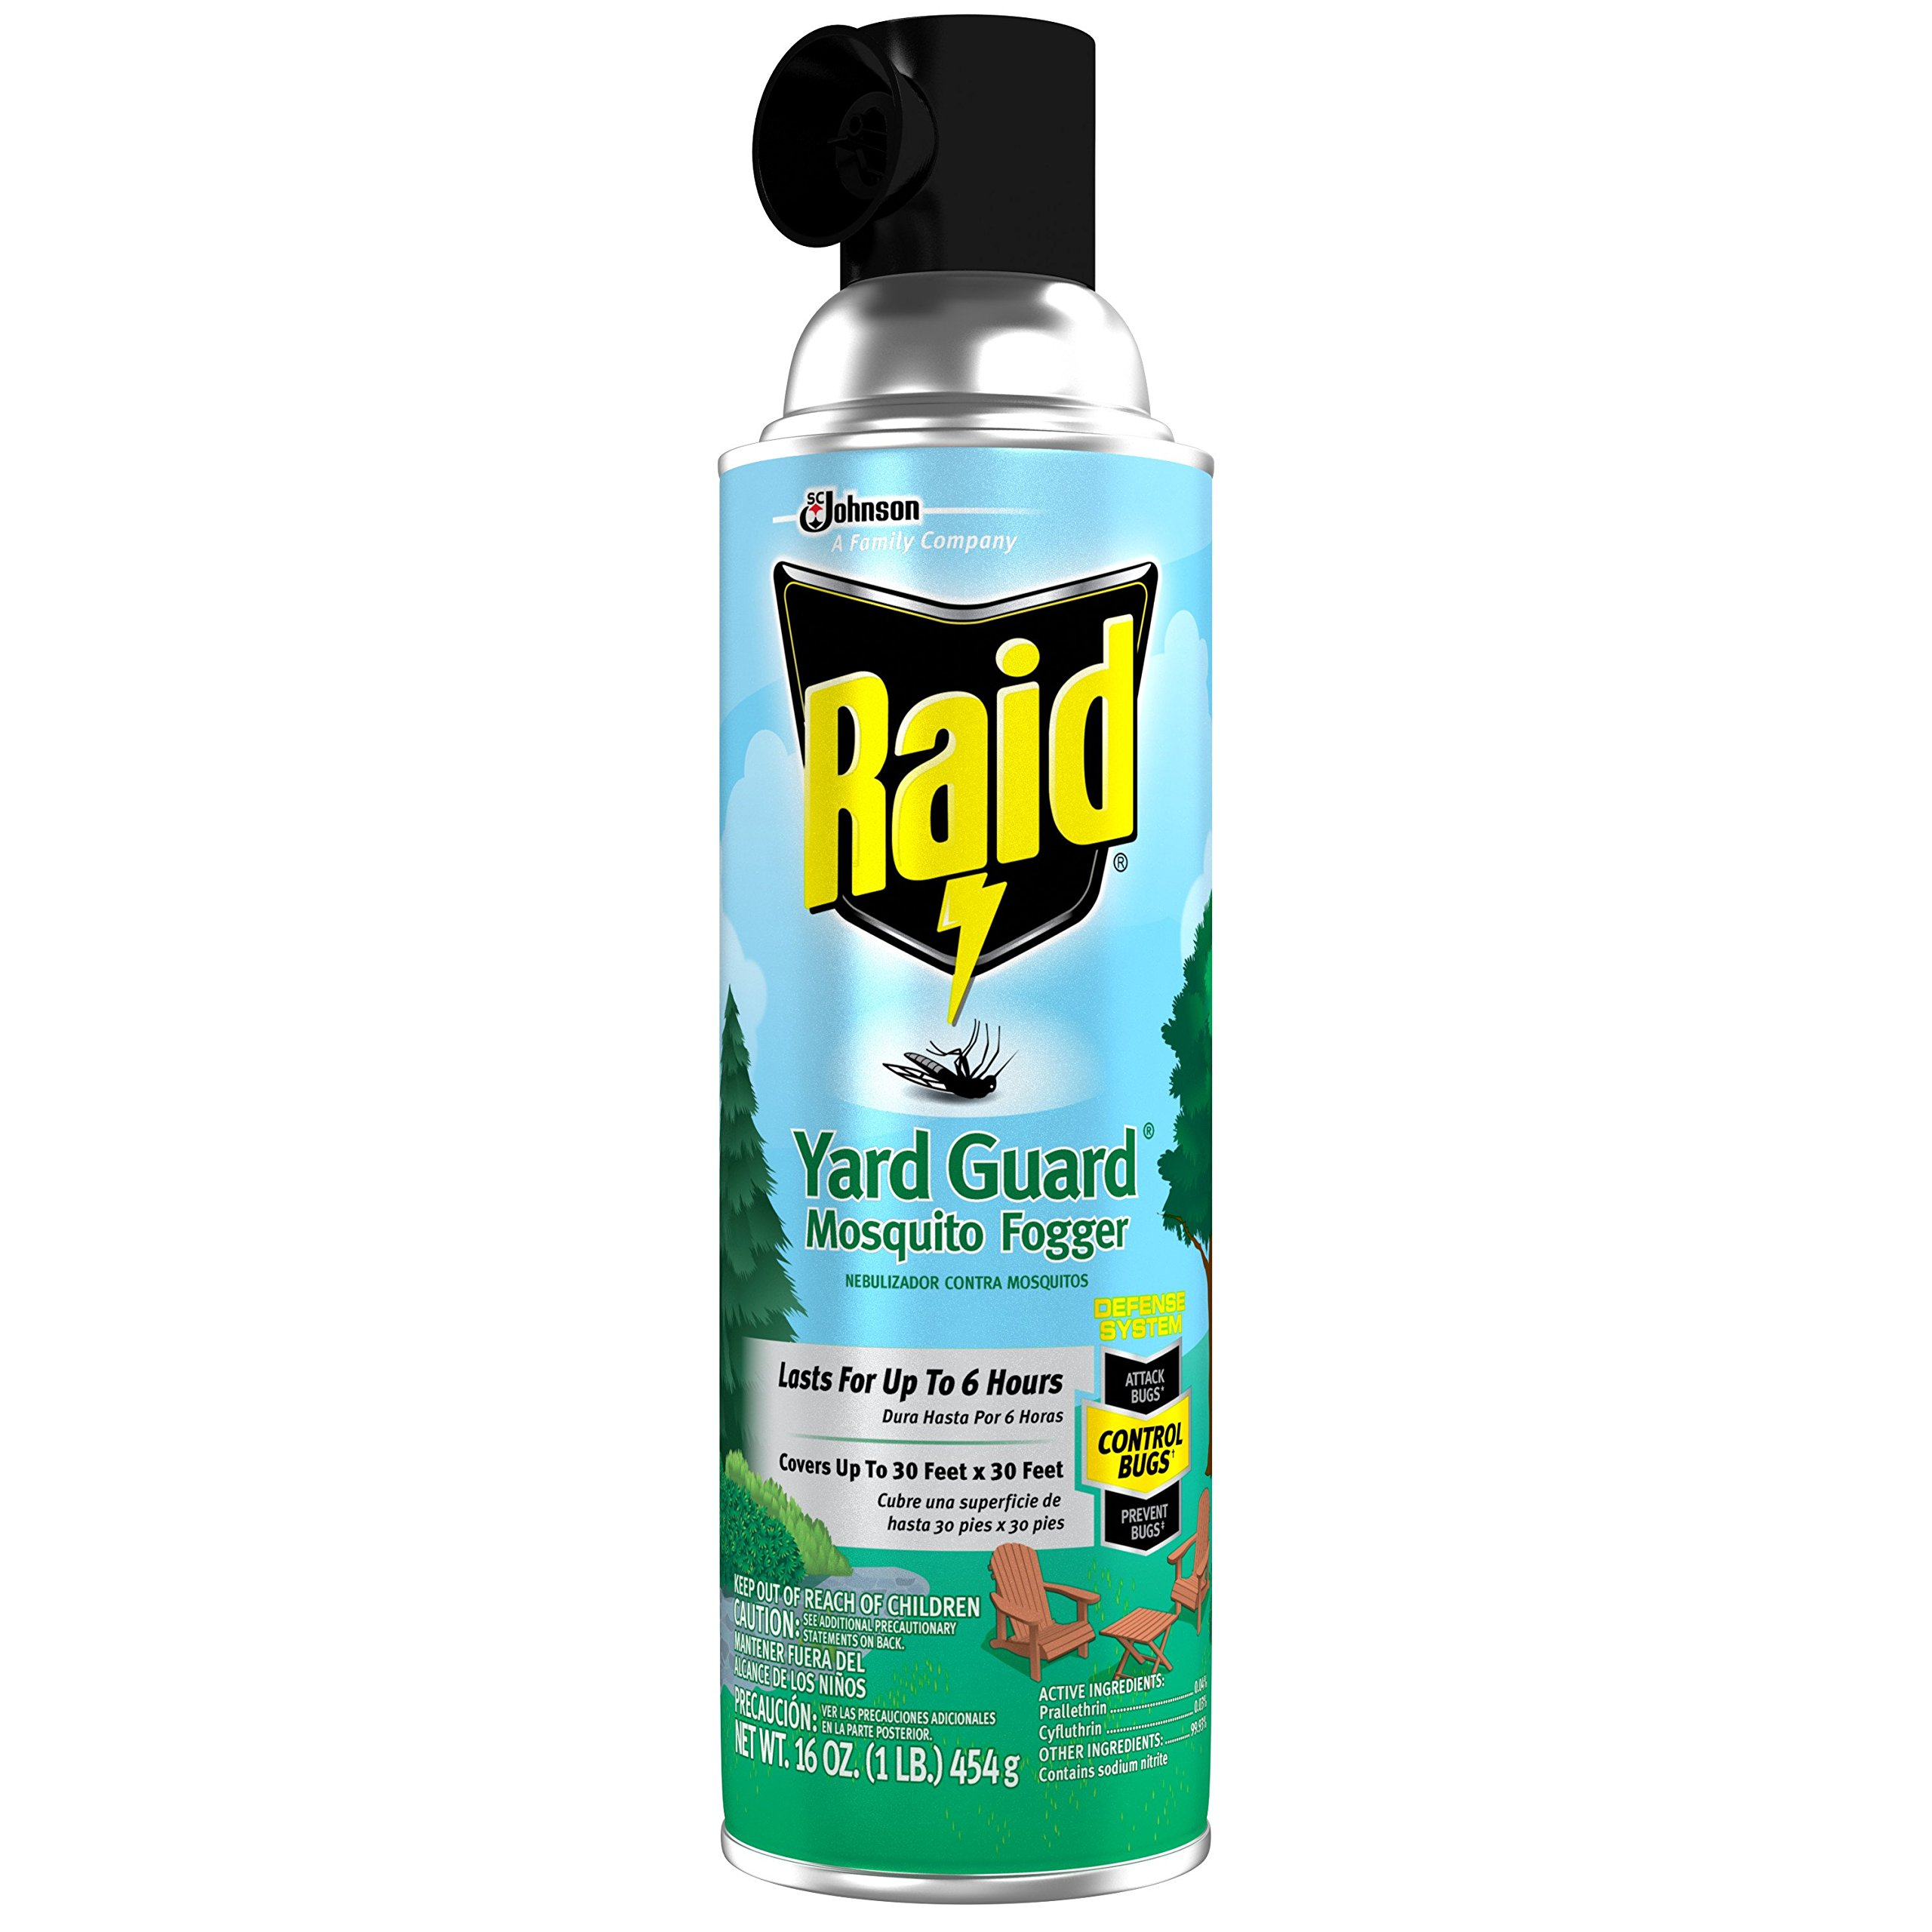 Raid Yard Guard Mosquito Fogger 16 oz, 12 Pack by Raid